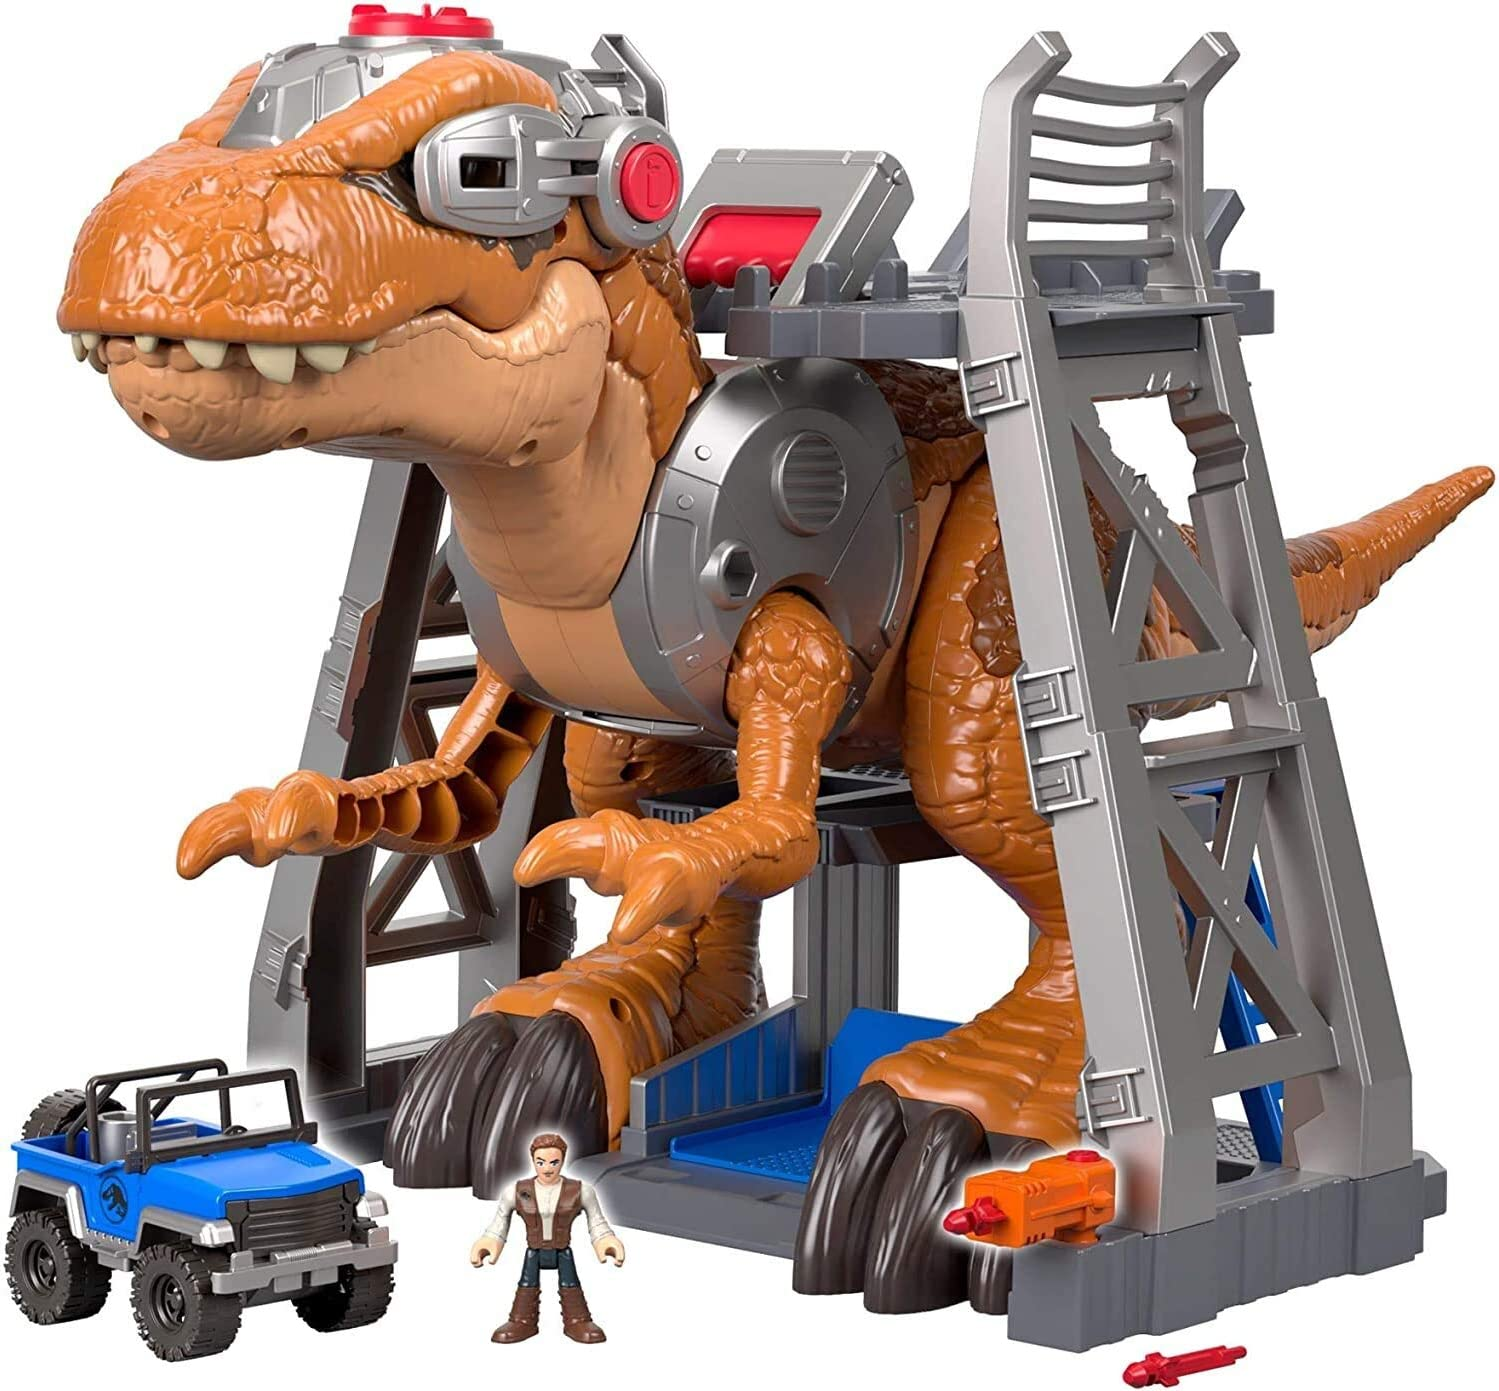 Top 10 Best Remote Control Dinosaurs (Gift Idea) For Toddlers 5